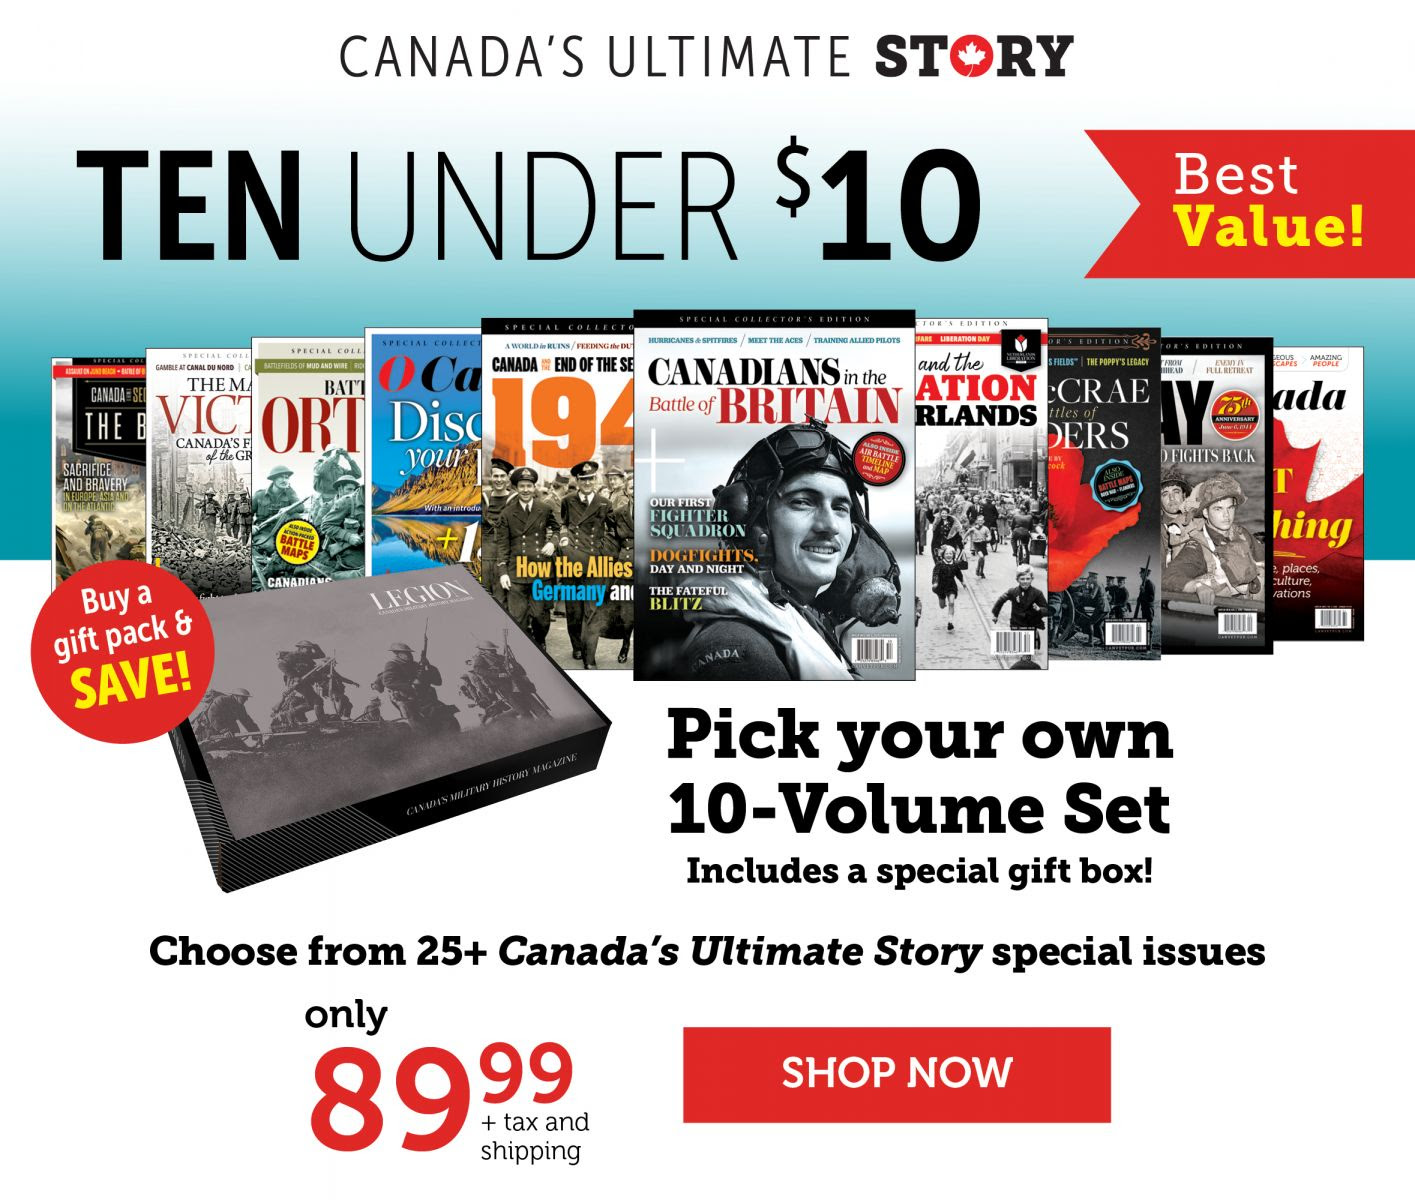 Canada's Ultimate Story - Ten under $10